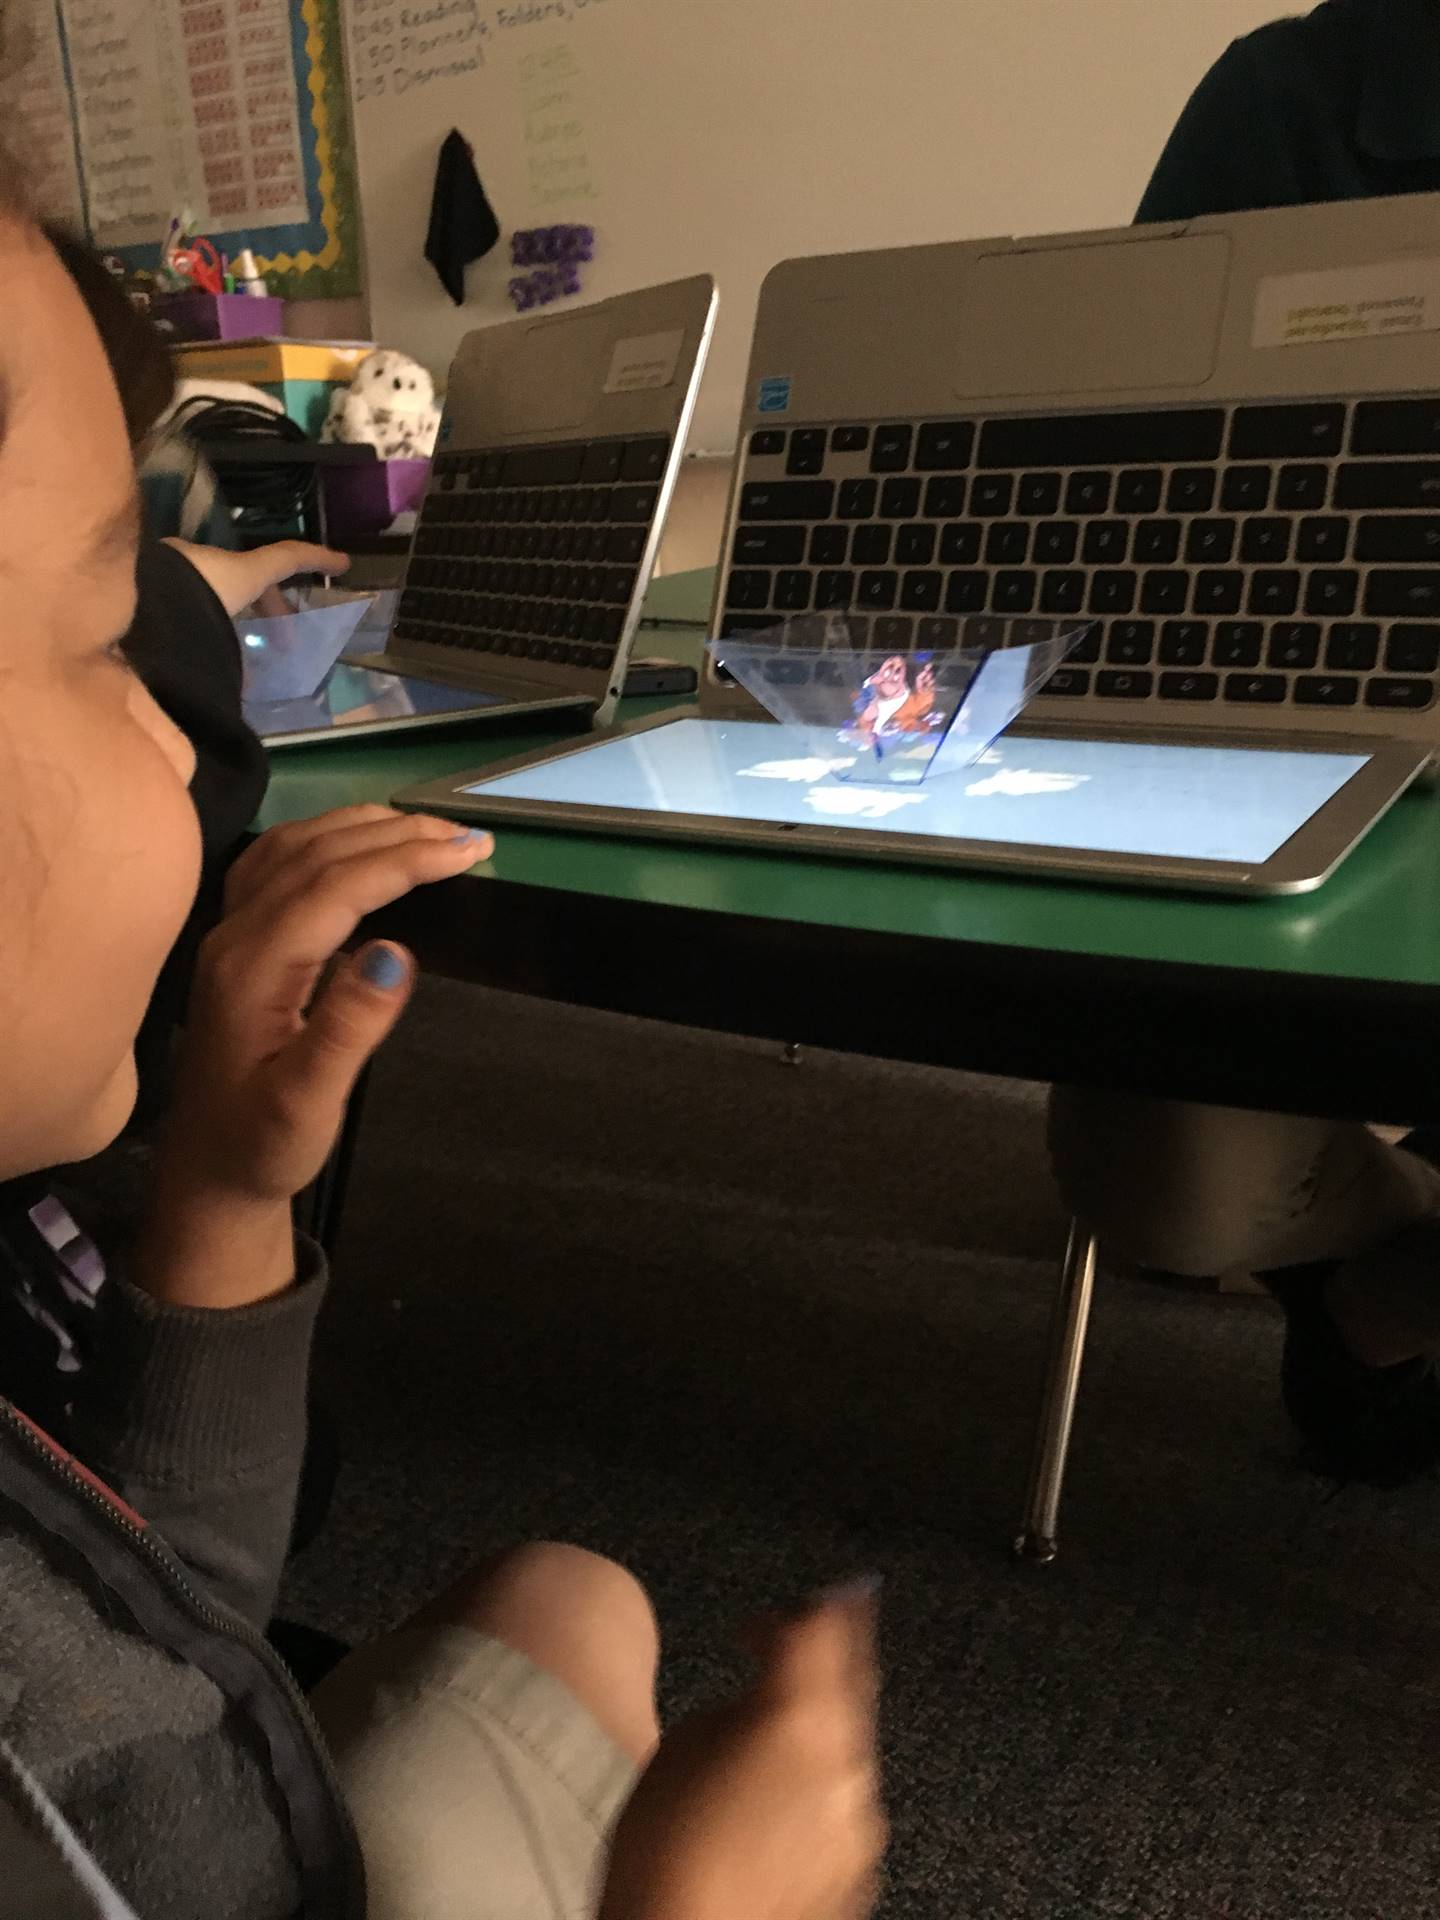 A student watches a hologram